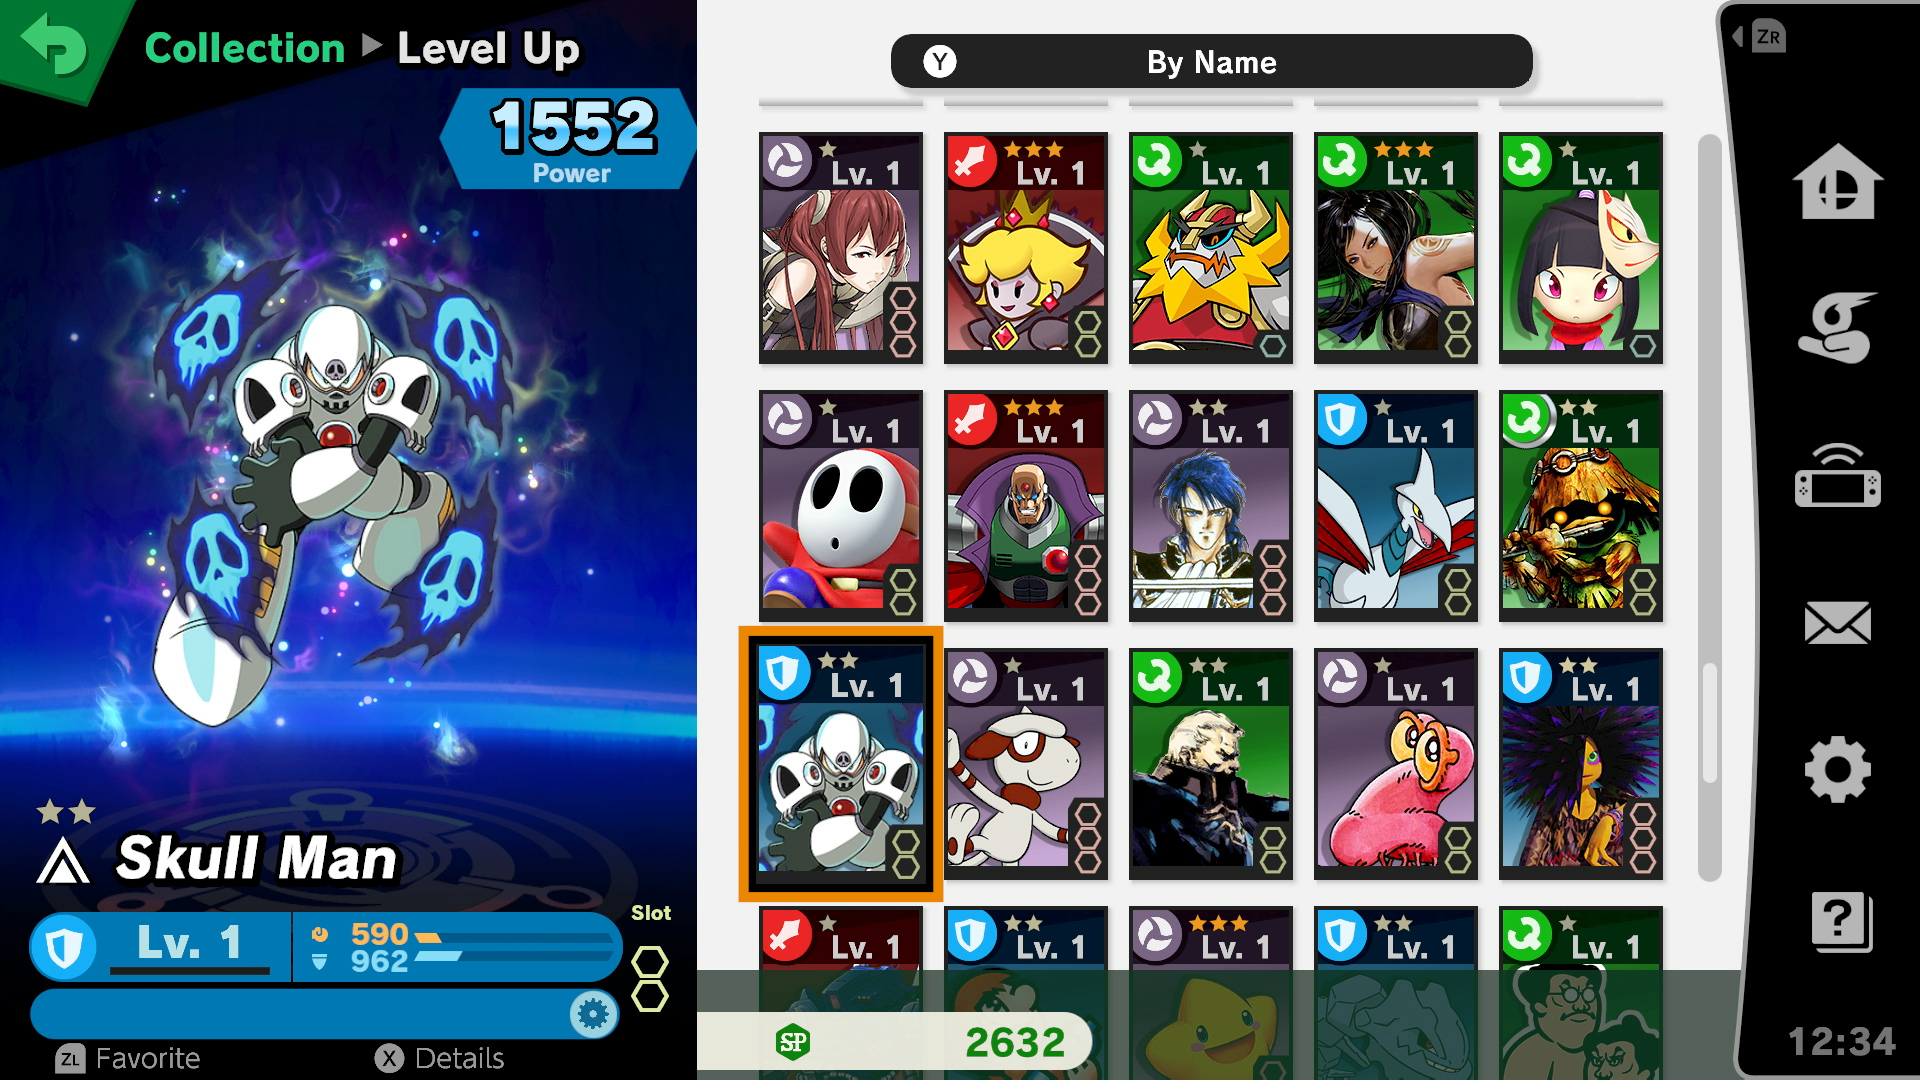 Super Smash Bros  Ultimate's Spirits Mode adds tons more